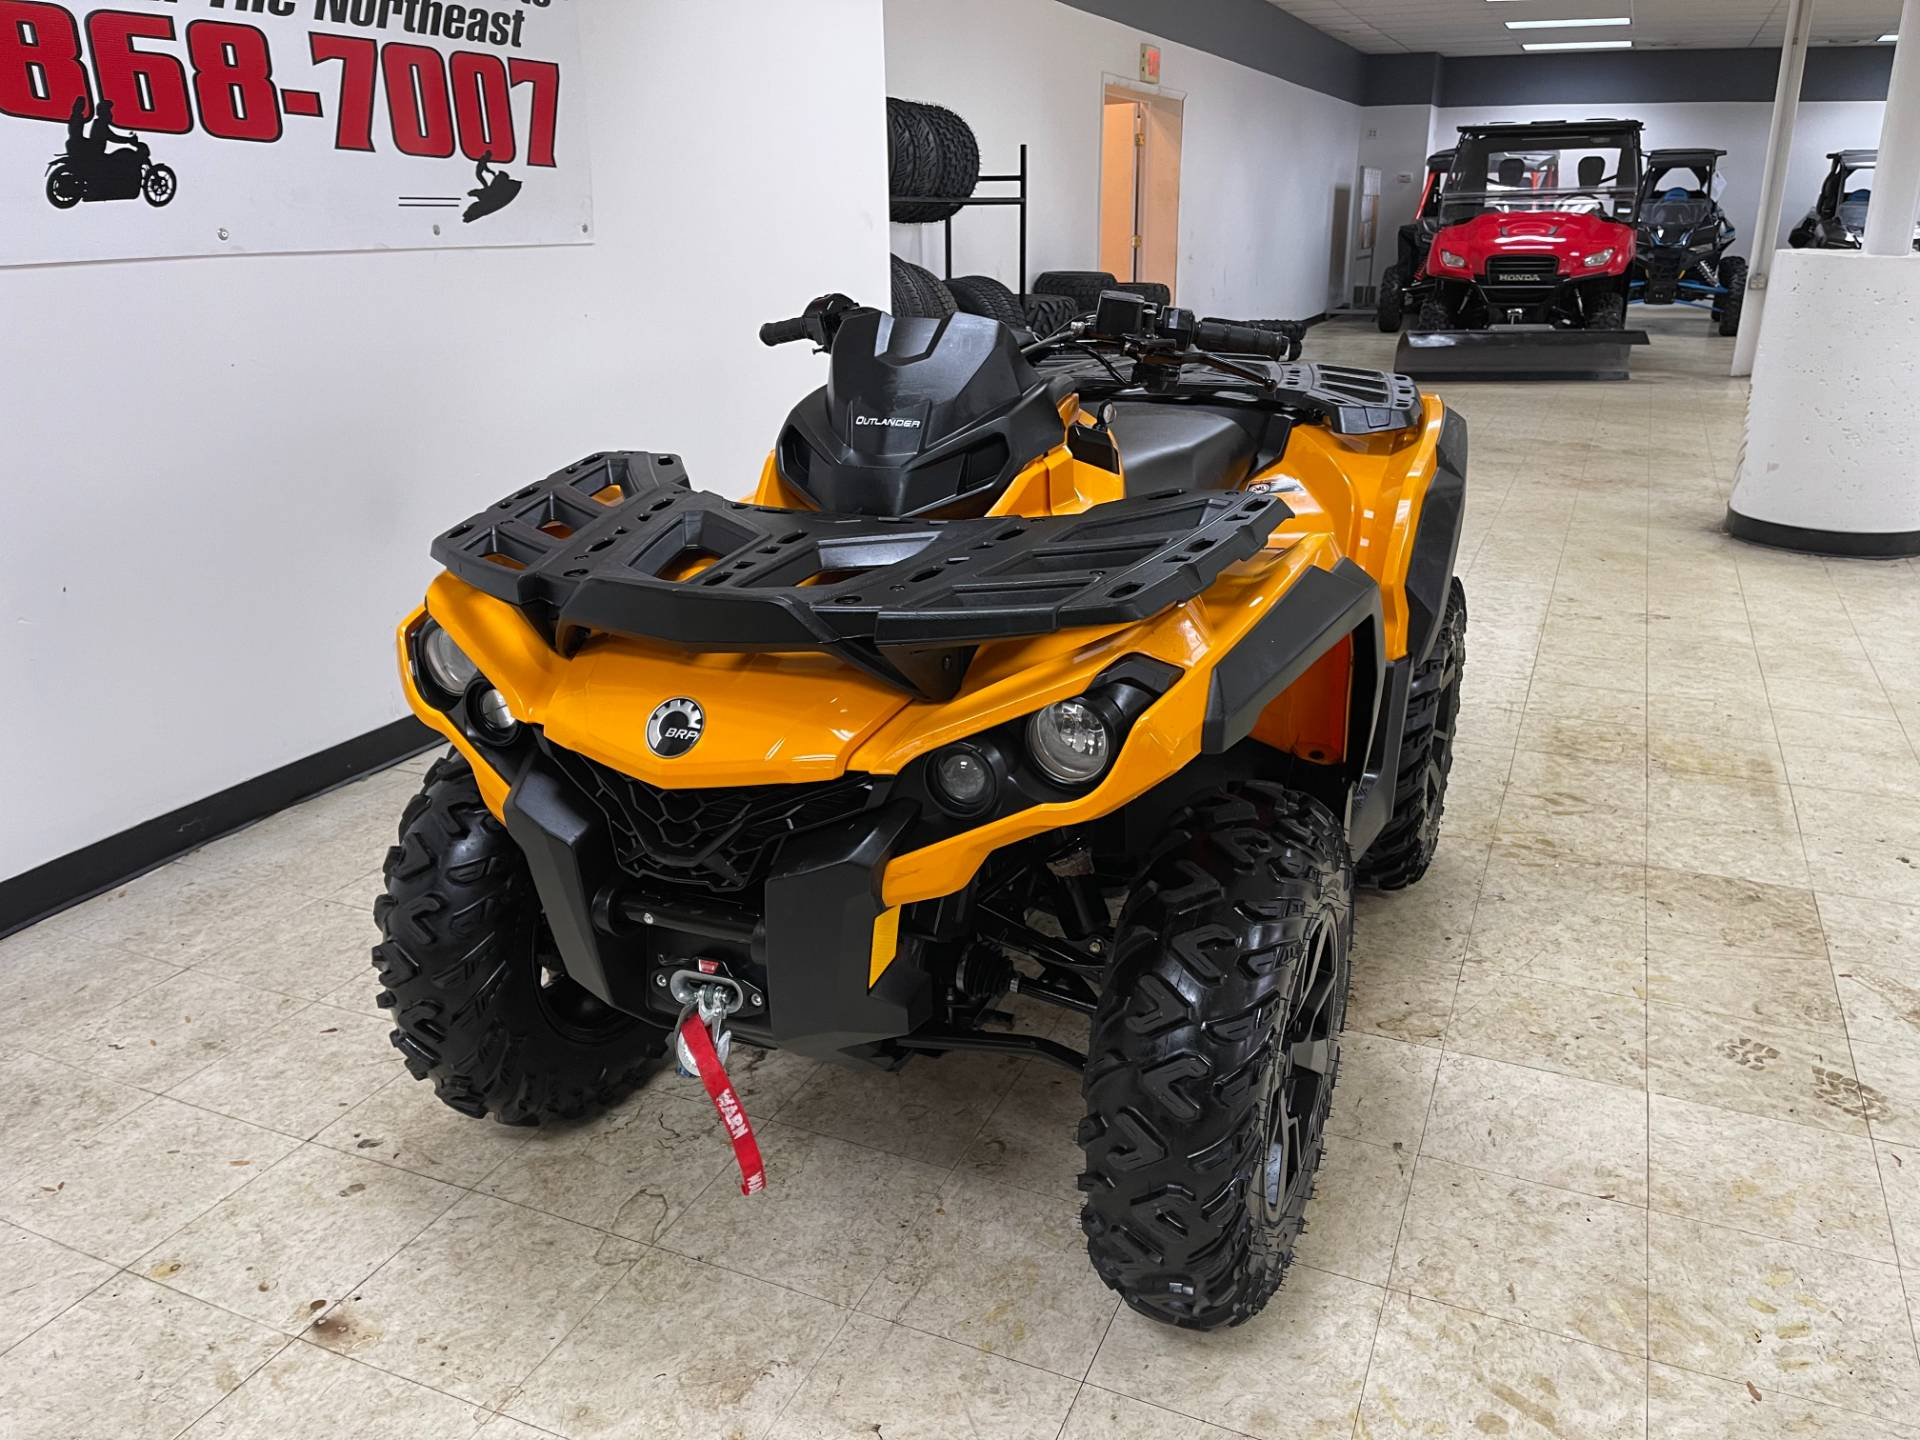 2019 Can-Am Outlander DPS 850 in Herkimer, New York - Photo 5